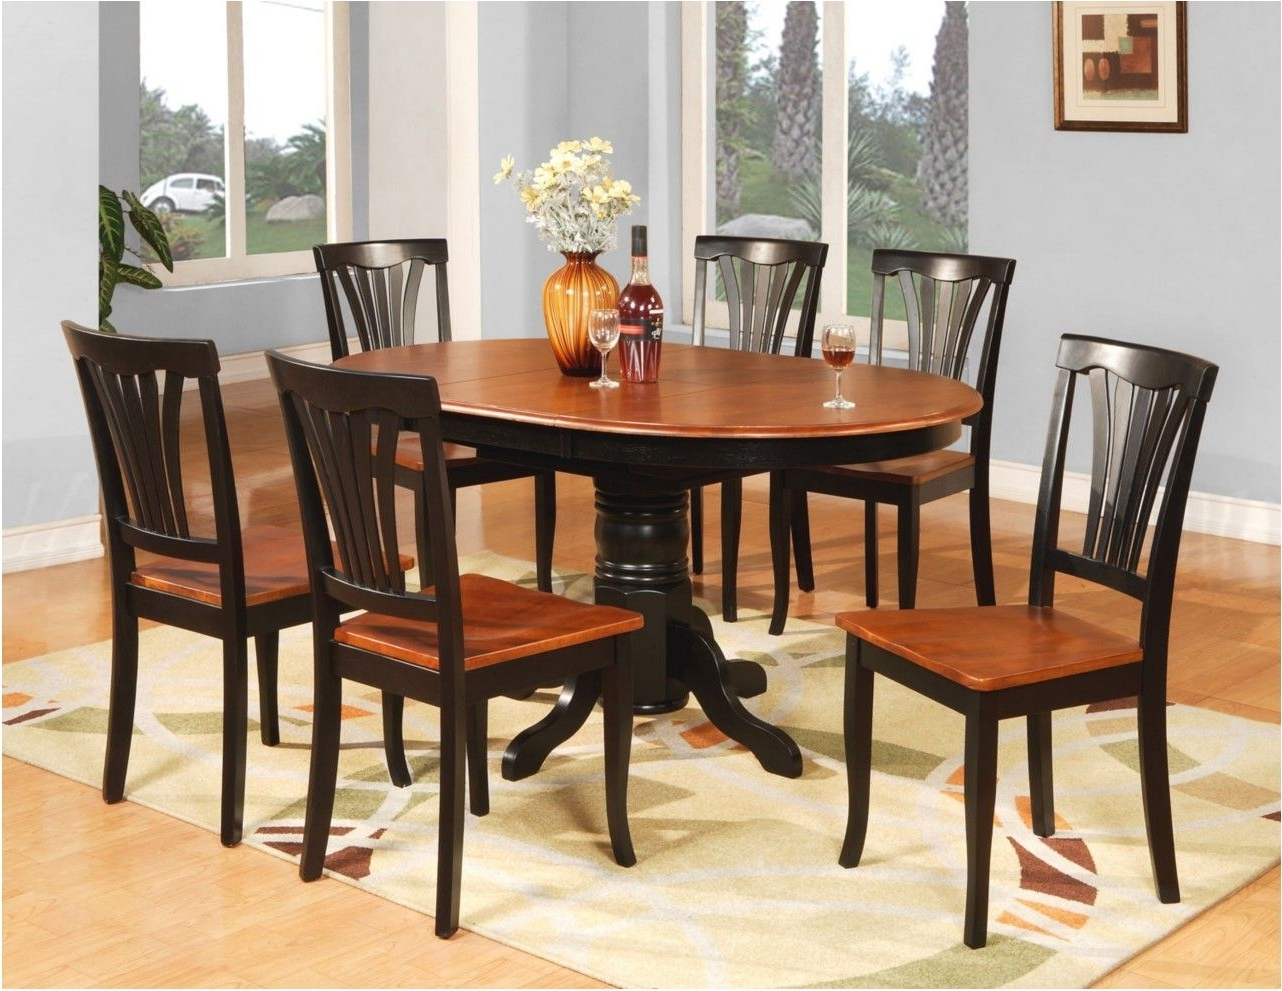 Magnificent Round Kitchen Table Sets For 6 Medium Size Of Person Inside 2017 6 Person Round Dining Tables (View 17 of 25)